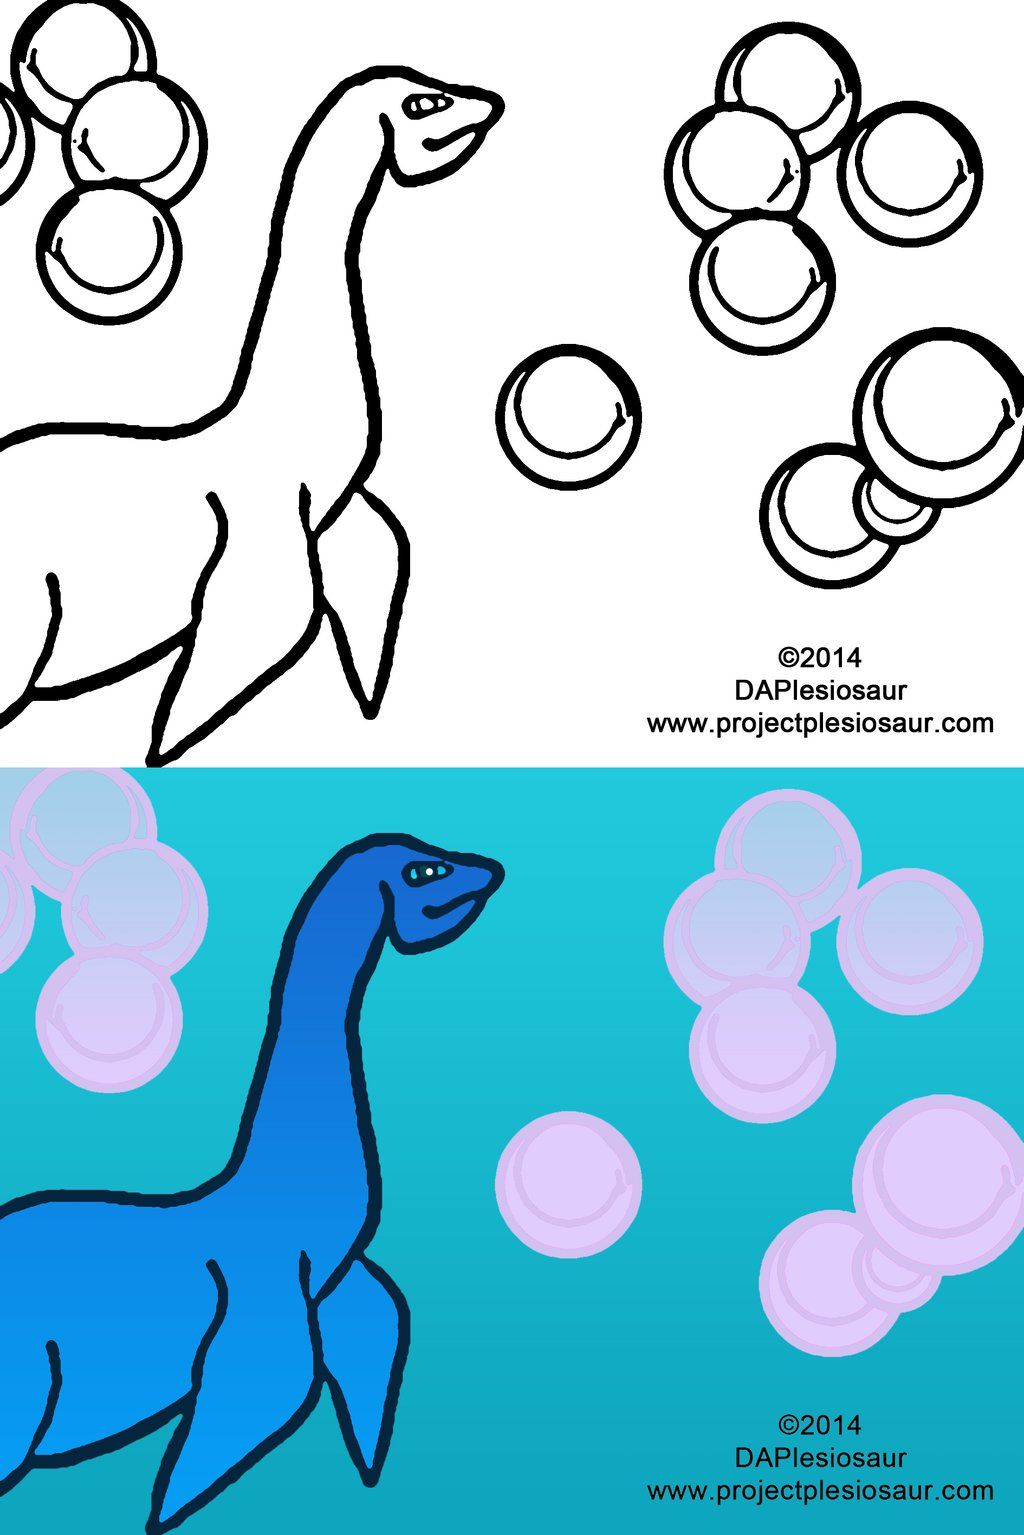 Loch Ness Monster (Nessy) Coloring Page by DAPlesiosaur.deviantart ...